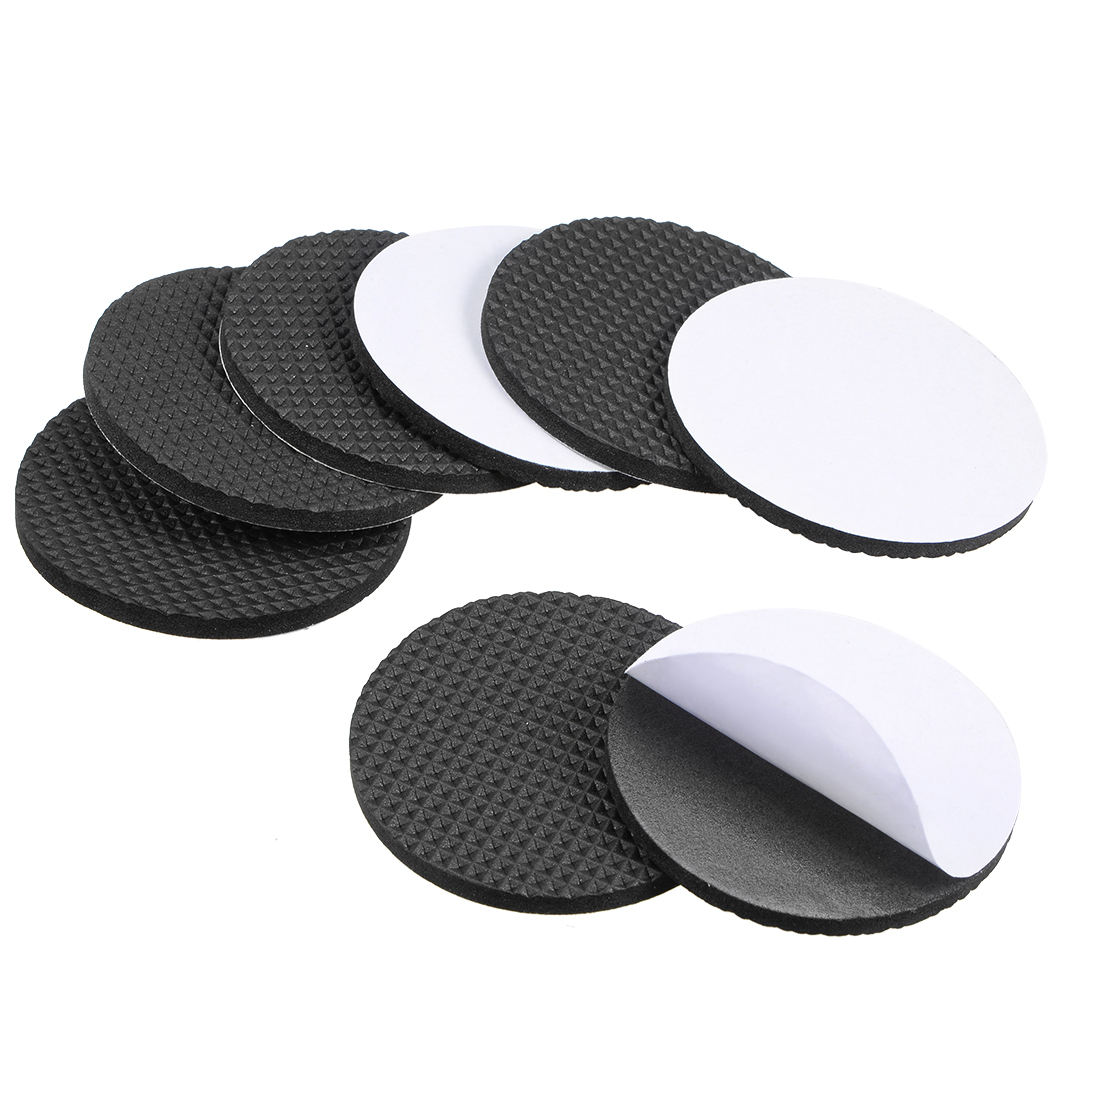 Furniture Pads Adhesive Rubber Pads 60mm Dia 4mm Thick Round Black 8Pcs